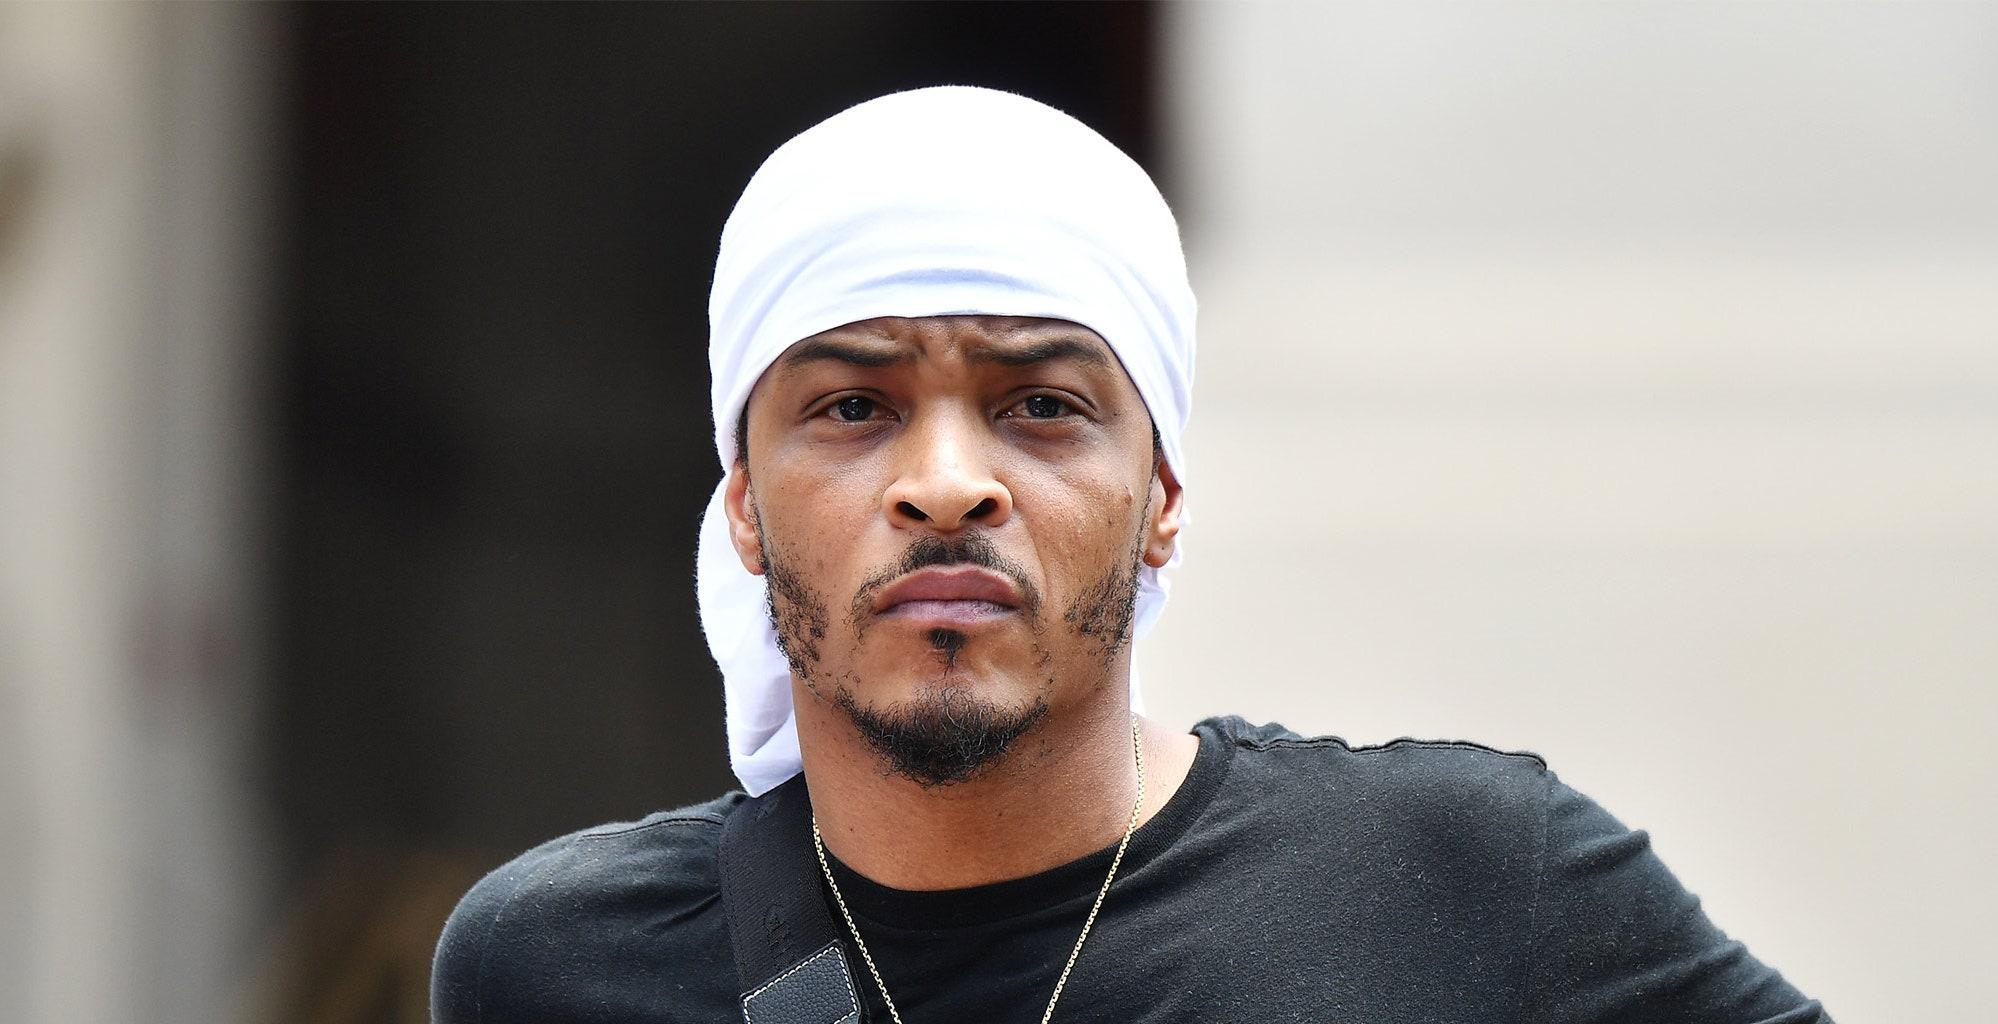 T.I. Sparks An Intense Debate After Sharing This Video